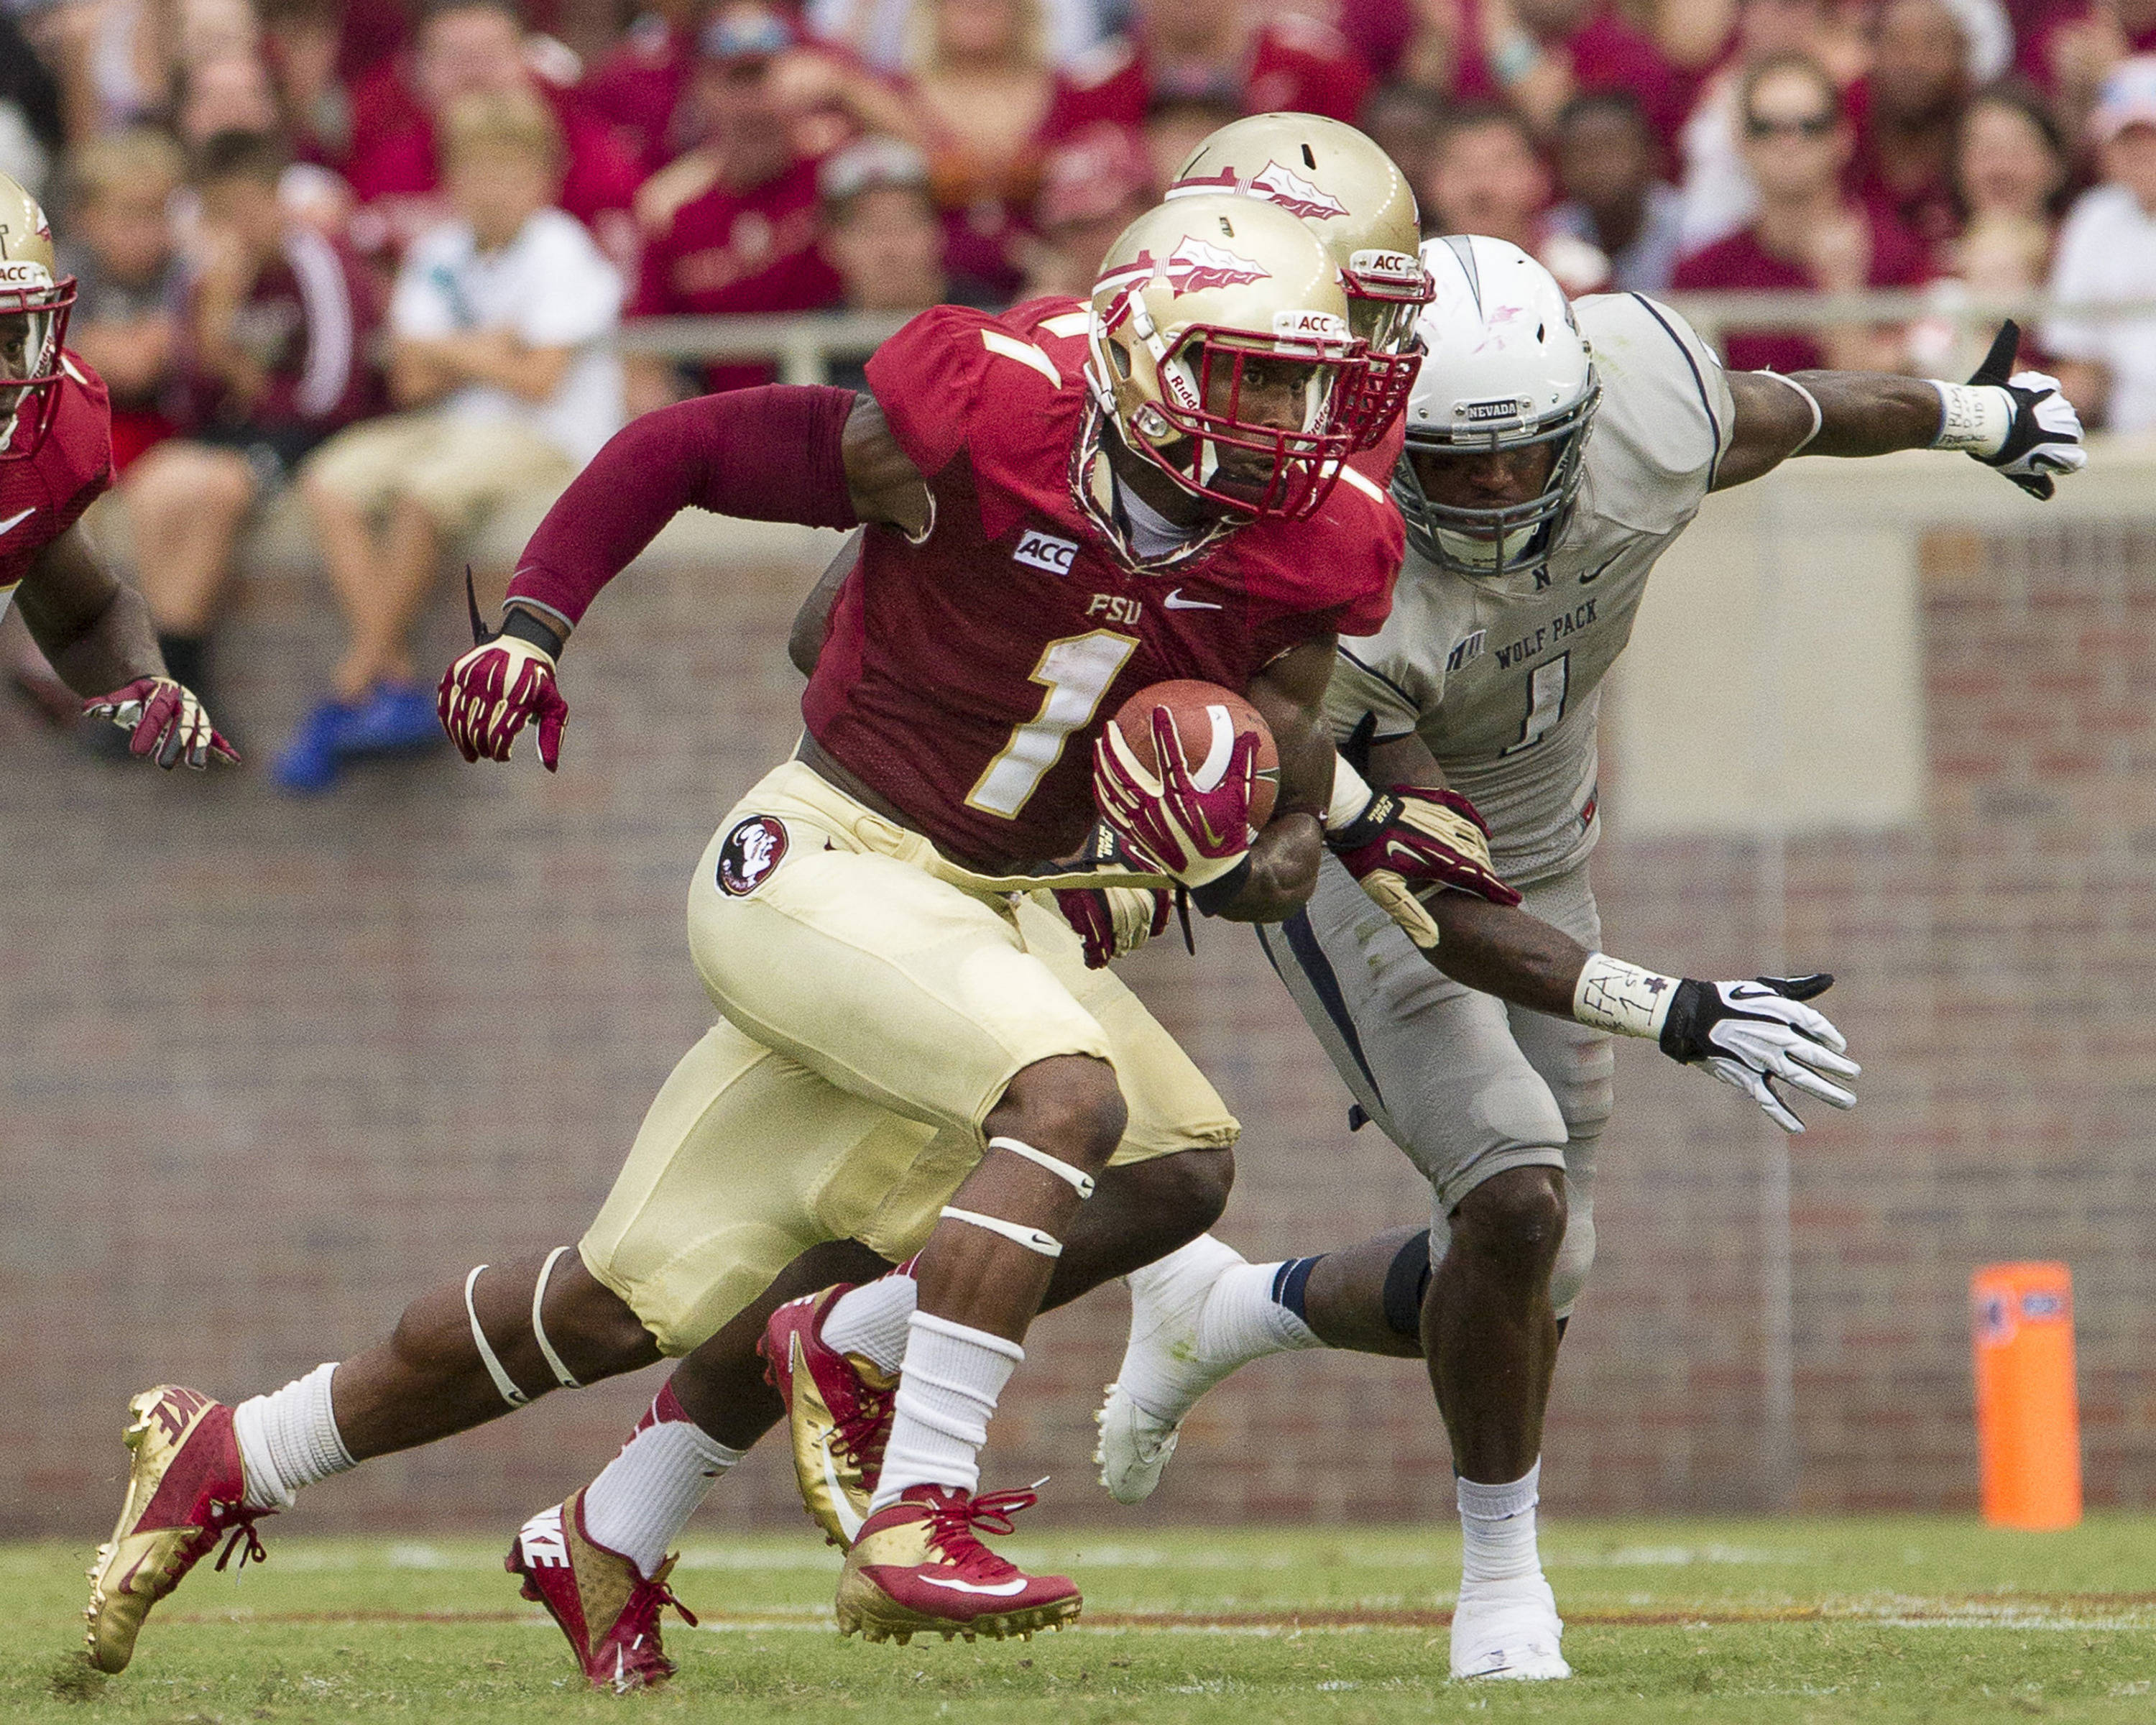 Kelvin Benjamin (1) carries the ball during FSU's 62-7 win over Nevada on Saturday, Sept 14, 2013 in Tallahassee, Fla.